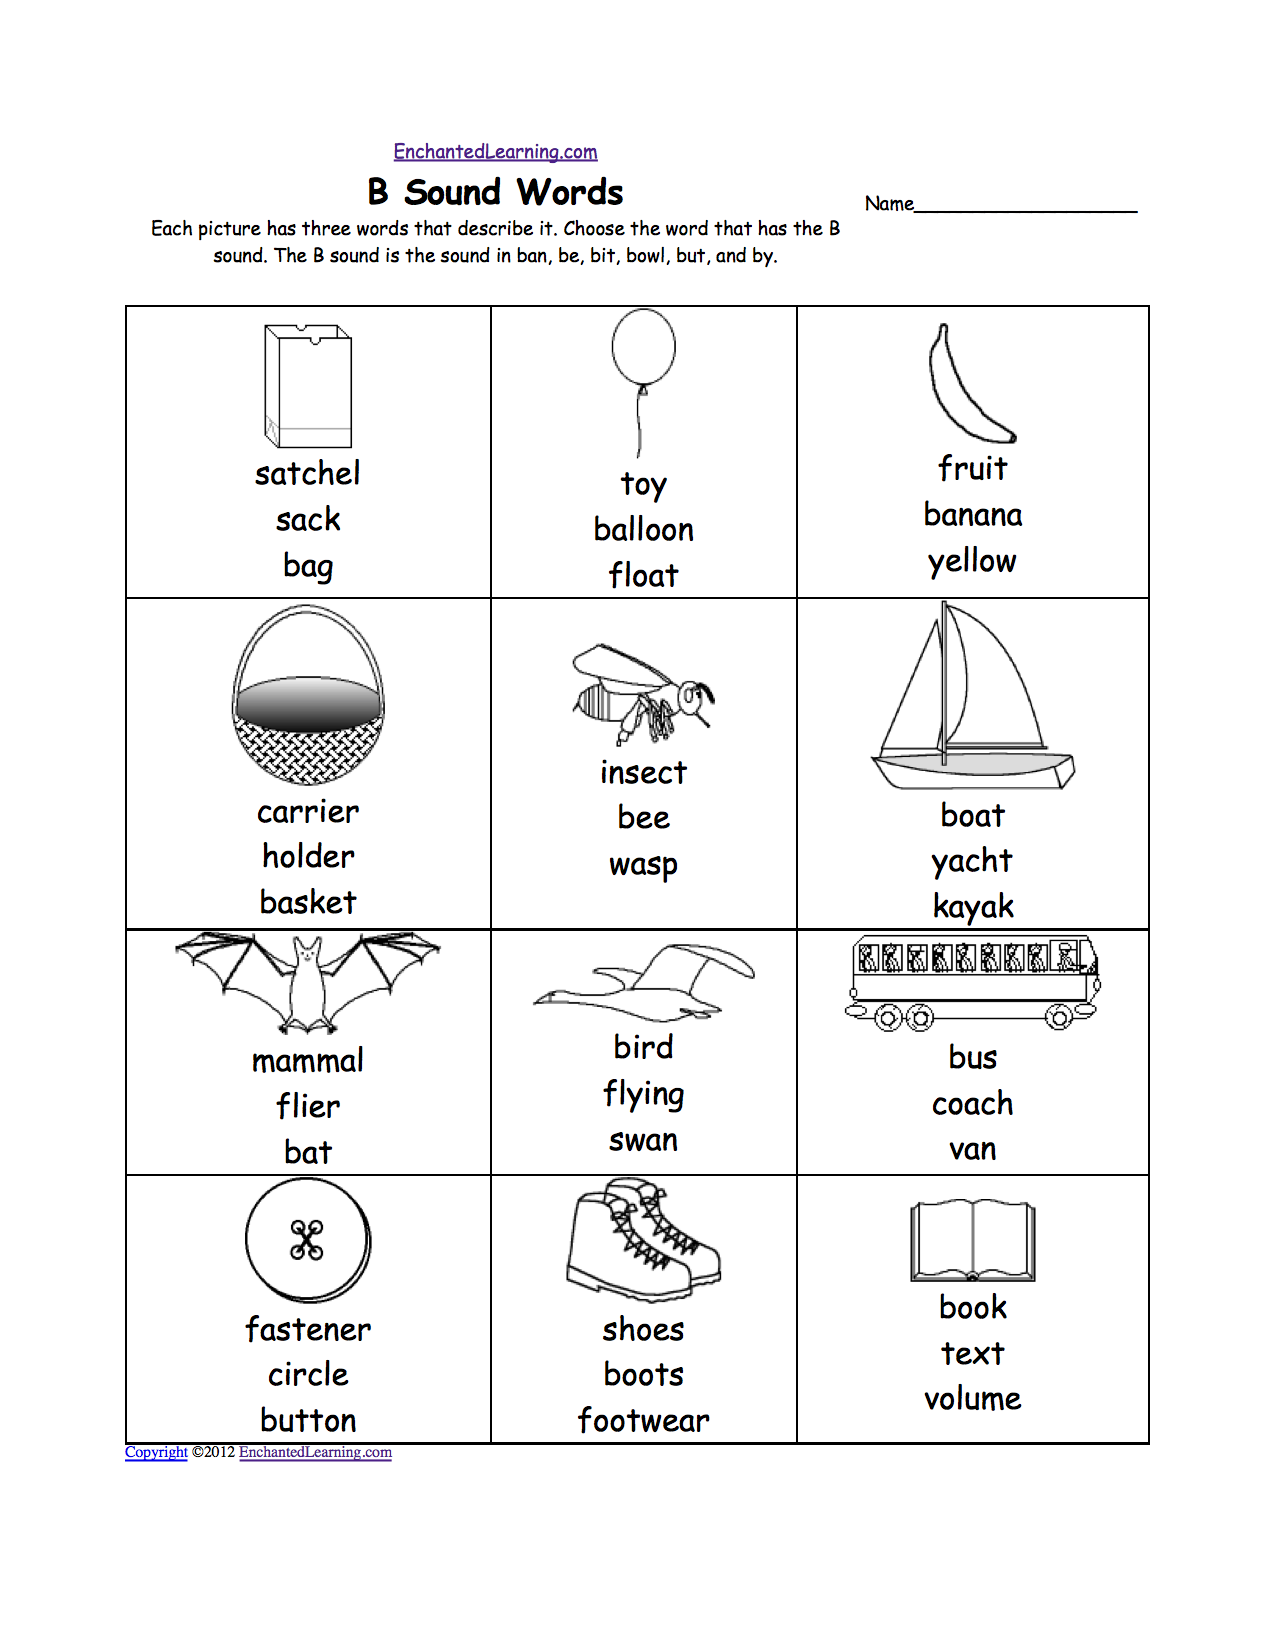 Weirdmailus  Personable Phonics Worksheets Multiple Choice Worksheets To Print  With Extraordinary Quotbquot Sound Phonics Worksheet Multiple Choice Each Picture Has Three Words That Describe It Choose The Word That Has A Quotbquot Sound The Quotbquot Sound Is The Sound  With Delightful Exponents Practice Worksheets Also Reading Readiness Worksheets For First Grade In Addition Recognizing Shapes Worksheets And Division Worksheets Year  As Well As Safety In The Science Lab Worksheet Additionally Parts Of A Plant Diagram Worksheet From Enchantedlearningcom With Weirdmailus  Extraordinary Phonics Worksheets Multiple Choice Worksheets To Print  With Delightful Quotbquot Sound Phonics Worksheet Multiple Choice Each Picture Has Three Words That Describe It Choose The Word That Has A Quotbquot Sound The Quotbquot Sound Is The Sound  And Personable Exponents Practice Worksheets Also Reading Readiness Worksheets For First Grade In Addition Recognizing Shapes Worksheets From Enchantedlearningcom